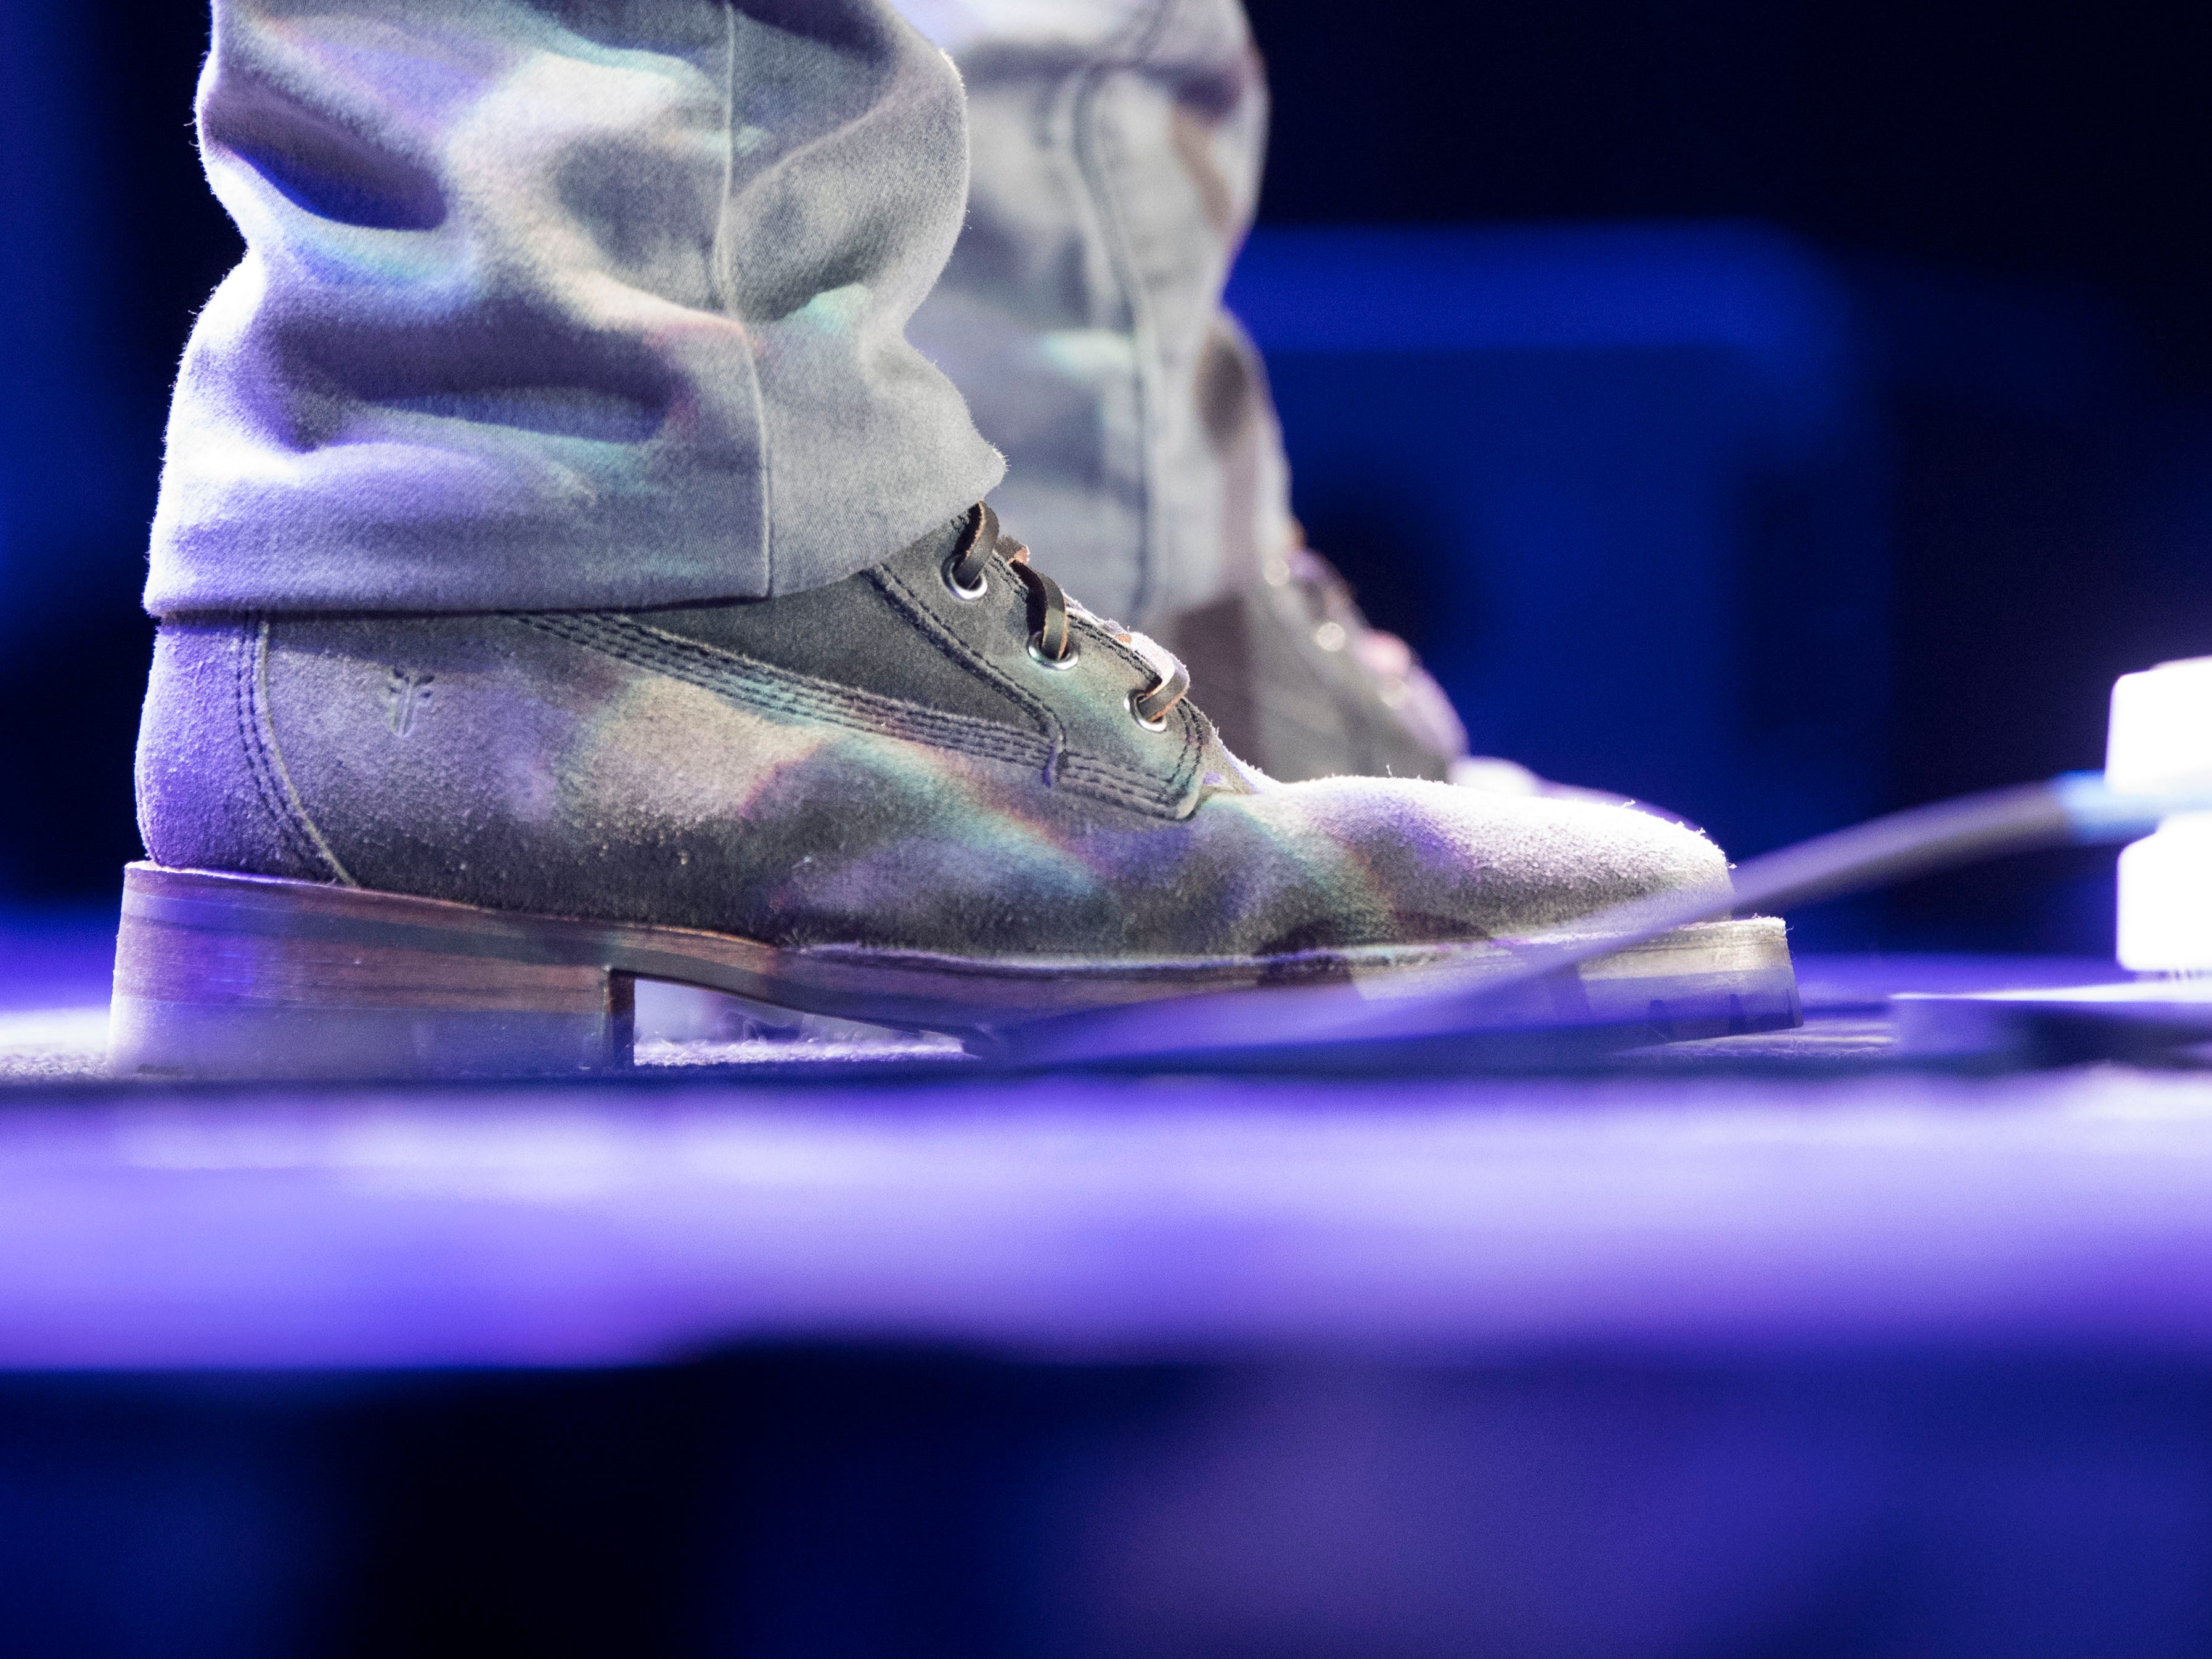 Opener Jameson Rodger's shoes are visible as he performs in Thompson-Boling Arena during a Luke Combs concert in Knoxville Friday, Feb. 15, 2019.